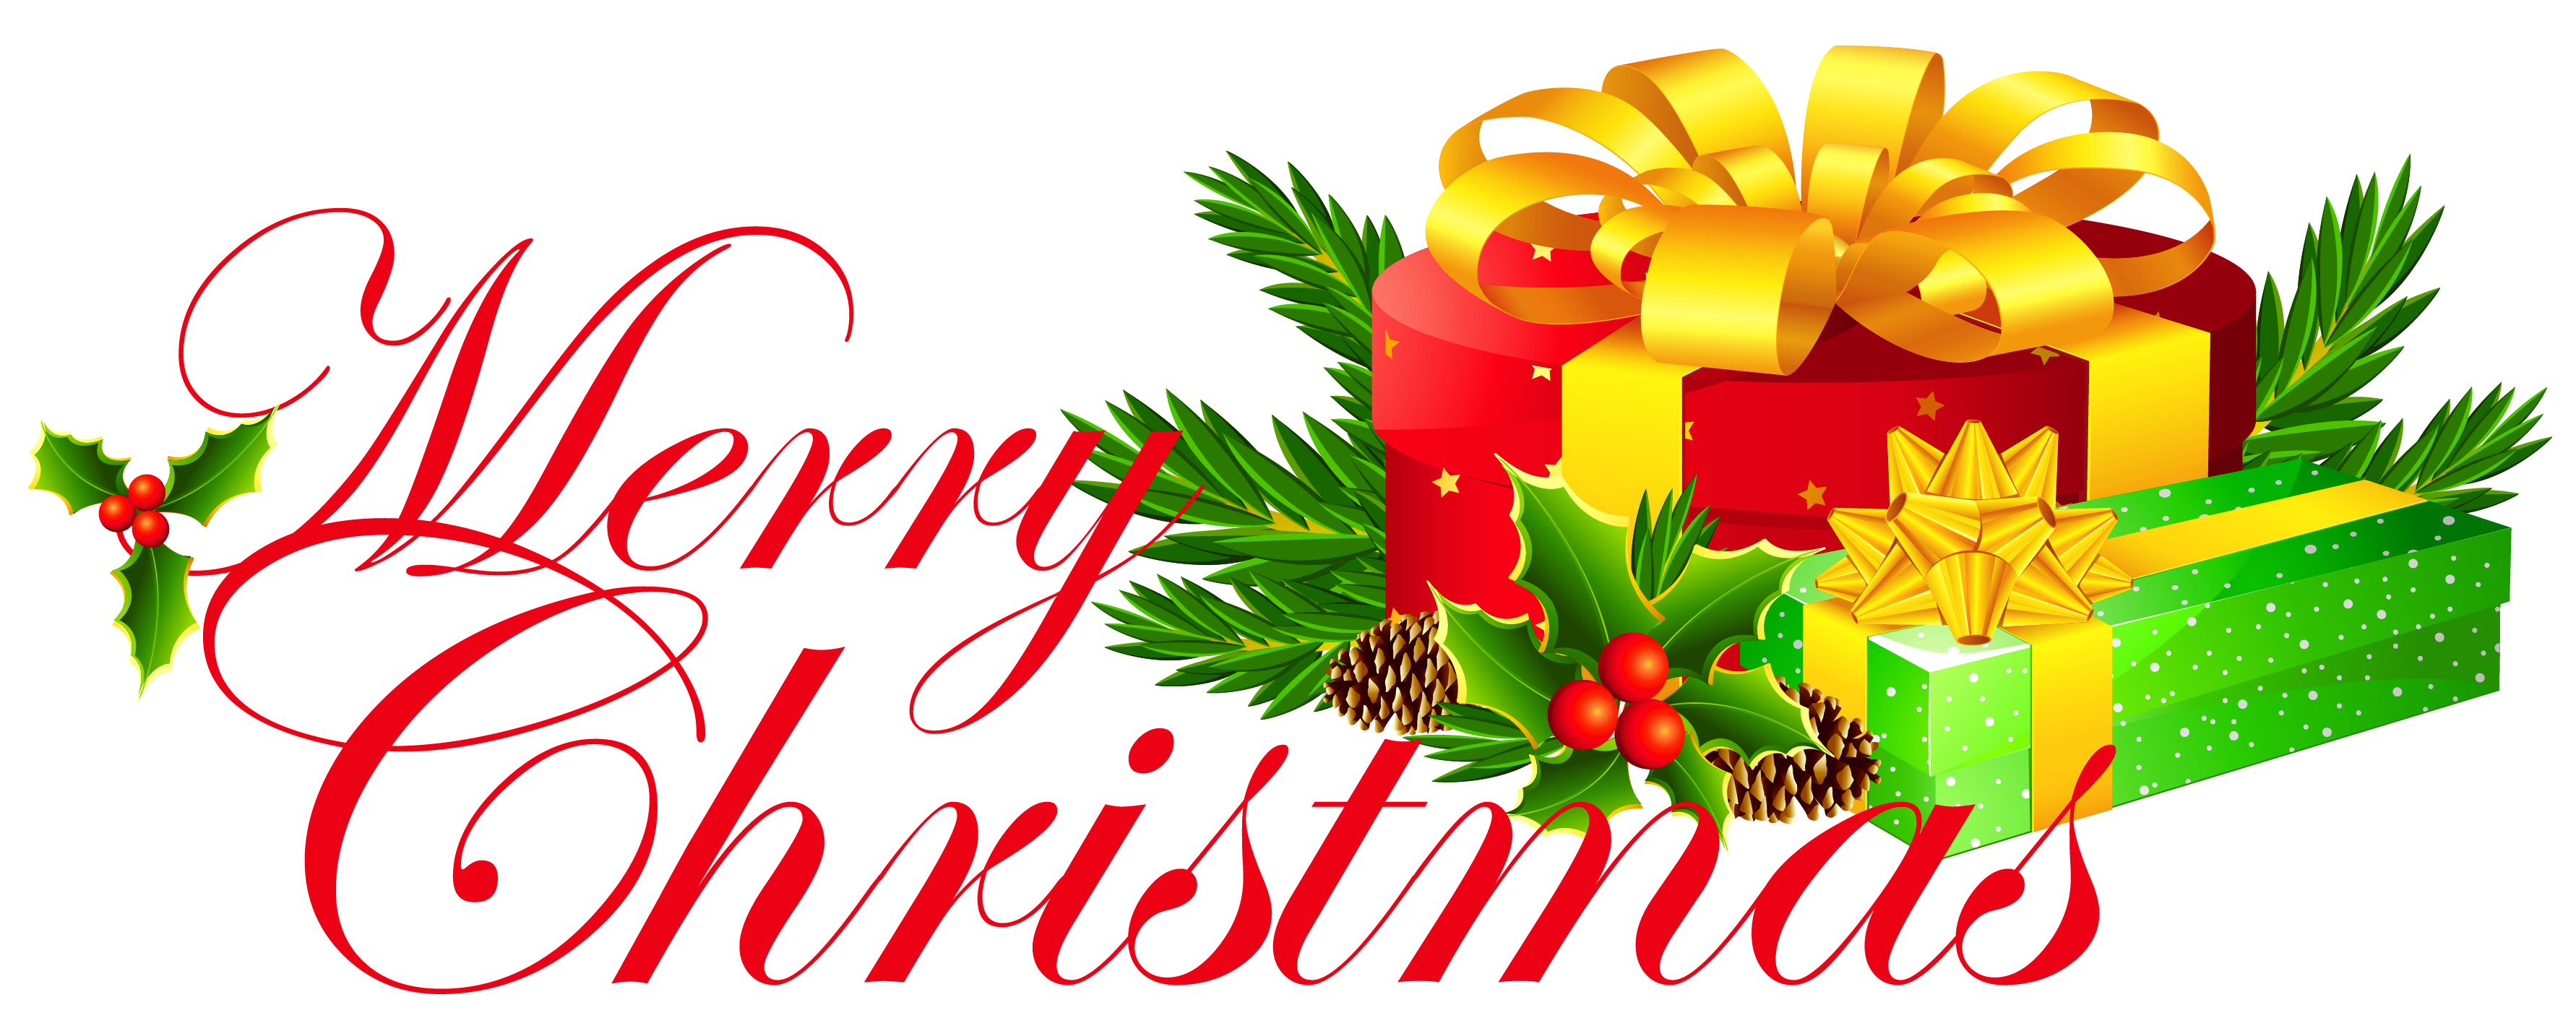 3565x1427 Merry Christmas Images Clip Art 2017 Merry Christmas Images Clip